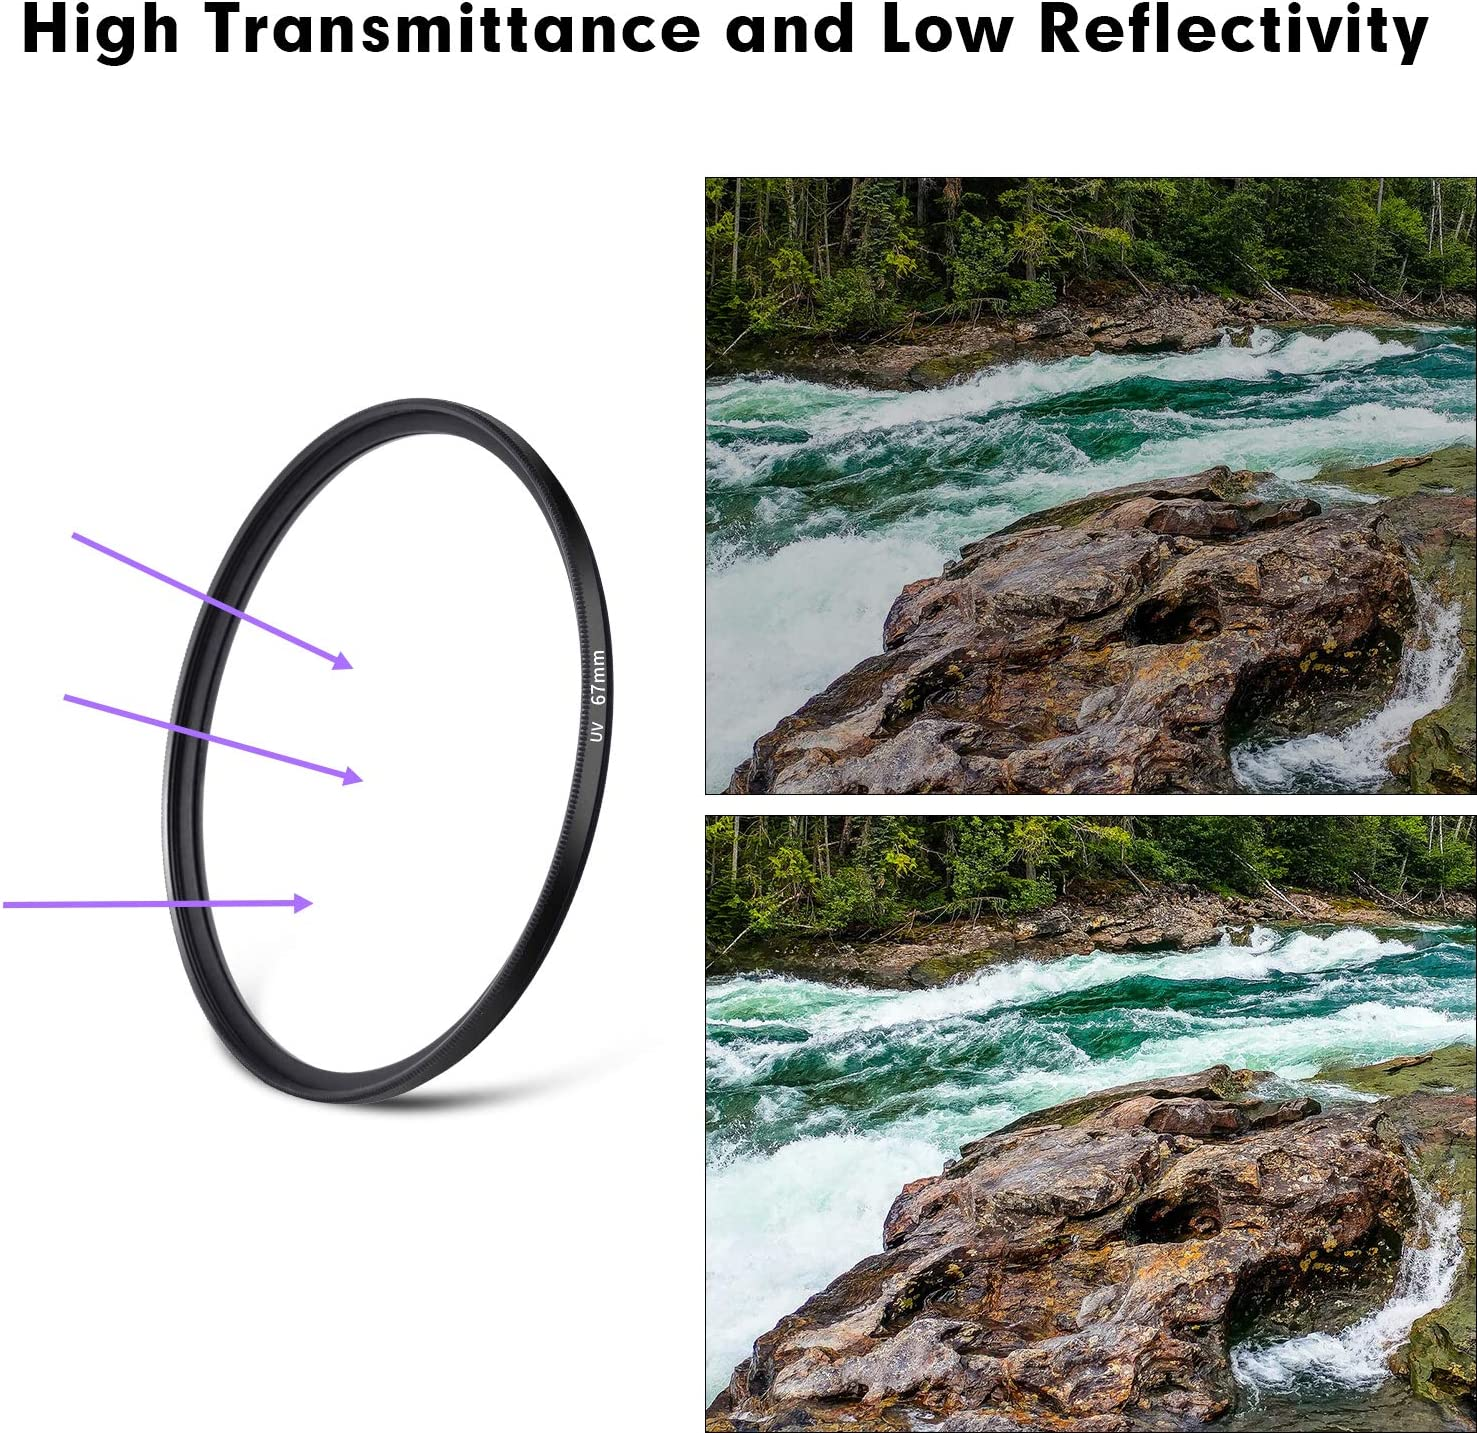 72mm UV Filter Ploture Ultra-Slim Multi-Coated UV Protection Camera Lens Filter with Lens Cloth Work for Canon//Nikon//Sony DSLR Camera Lens